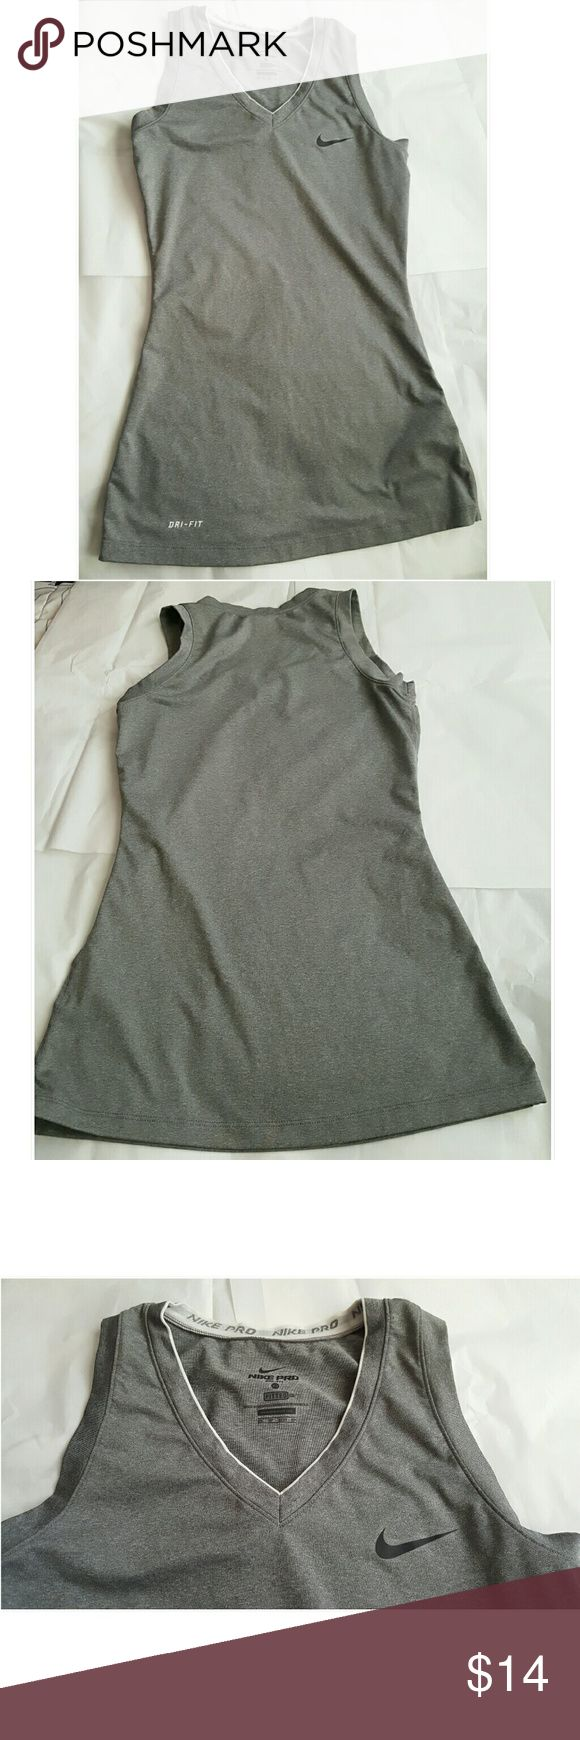 Nike Pro Top Excellent condition!  Worn once.  Fitted shirt. Nike Tops